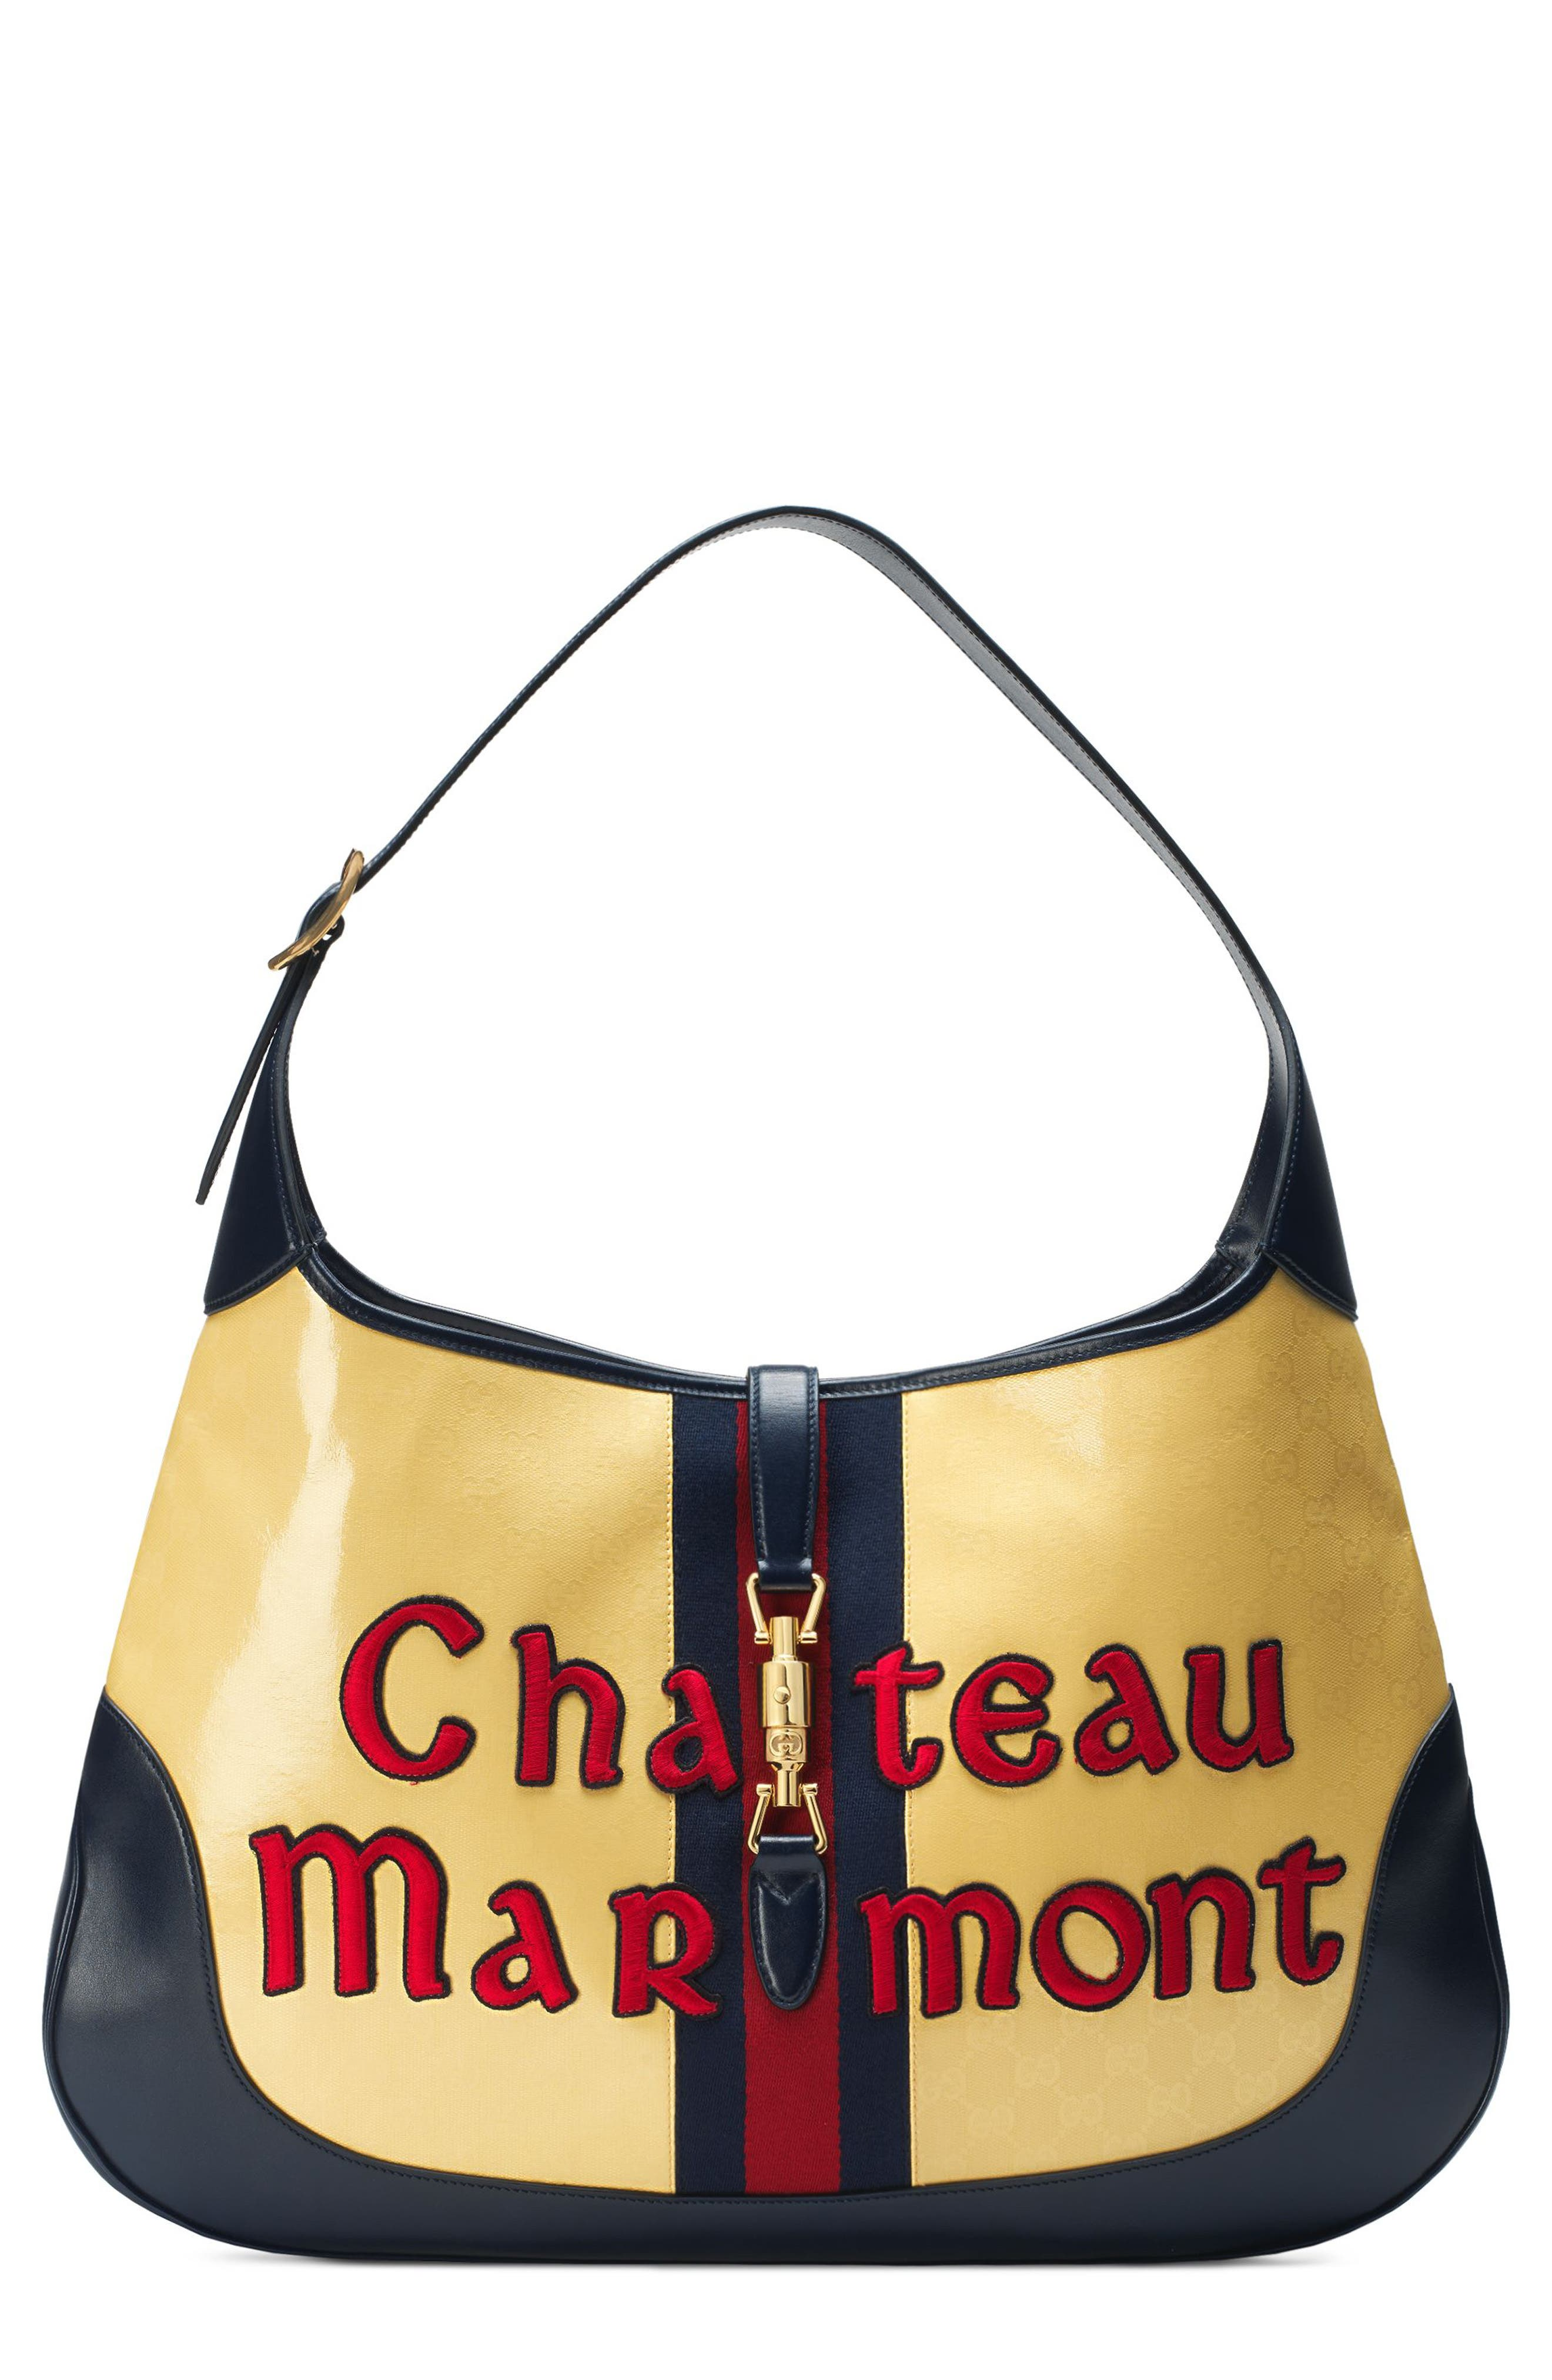 Maxi Jackie Chateau Marmont GG Hobo,                         Main,                         color, STRAW YELLOW/ BLU/ RED